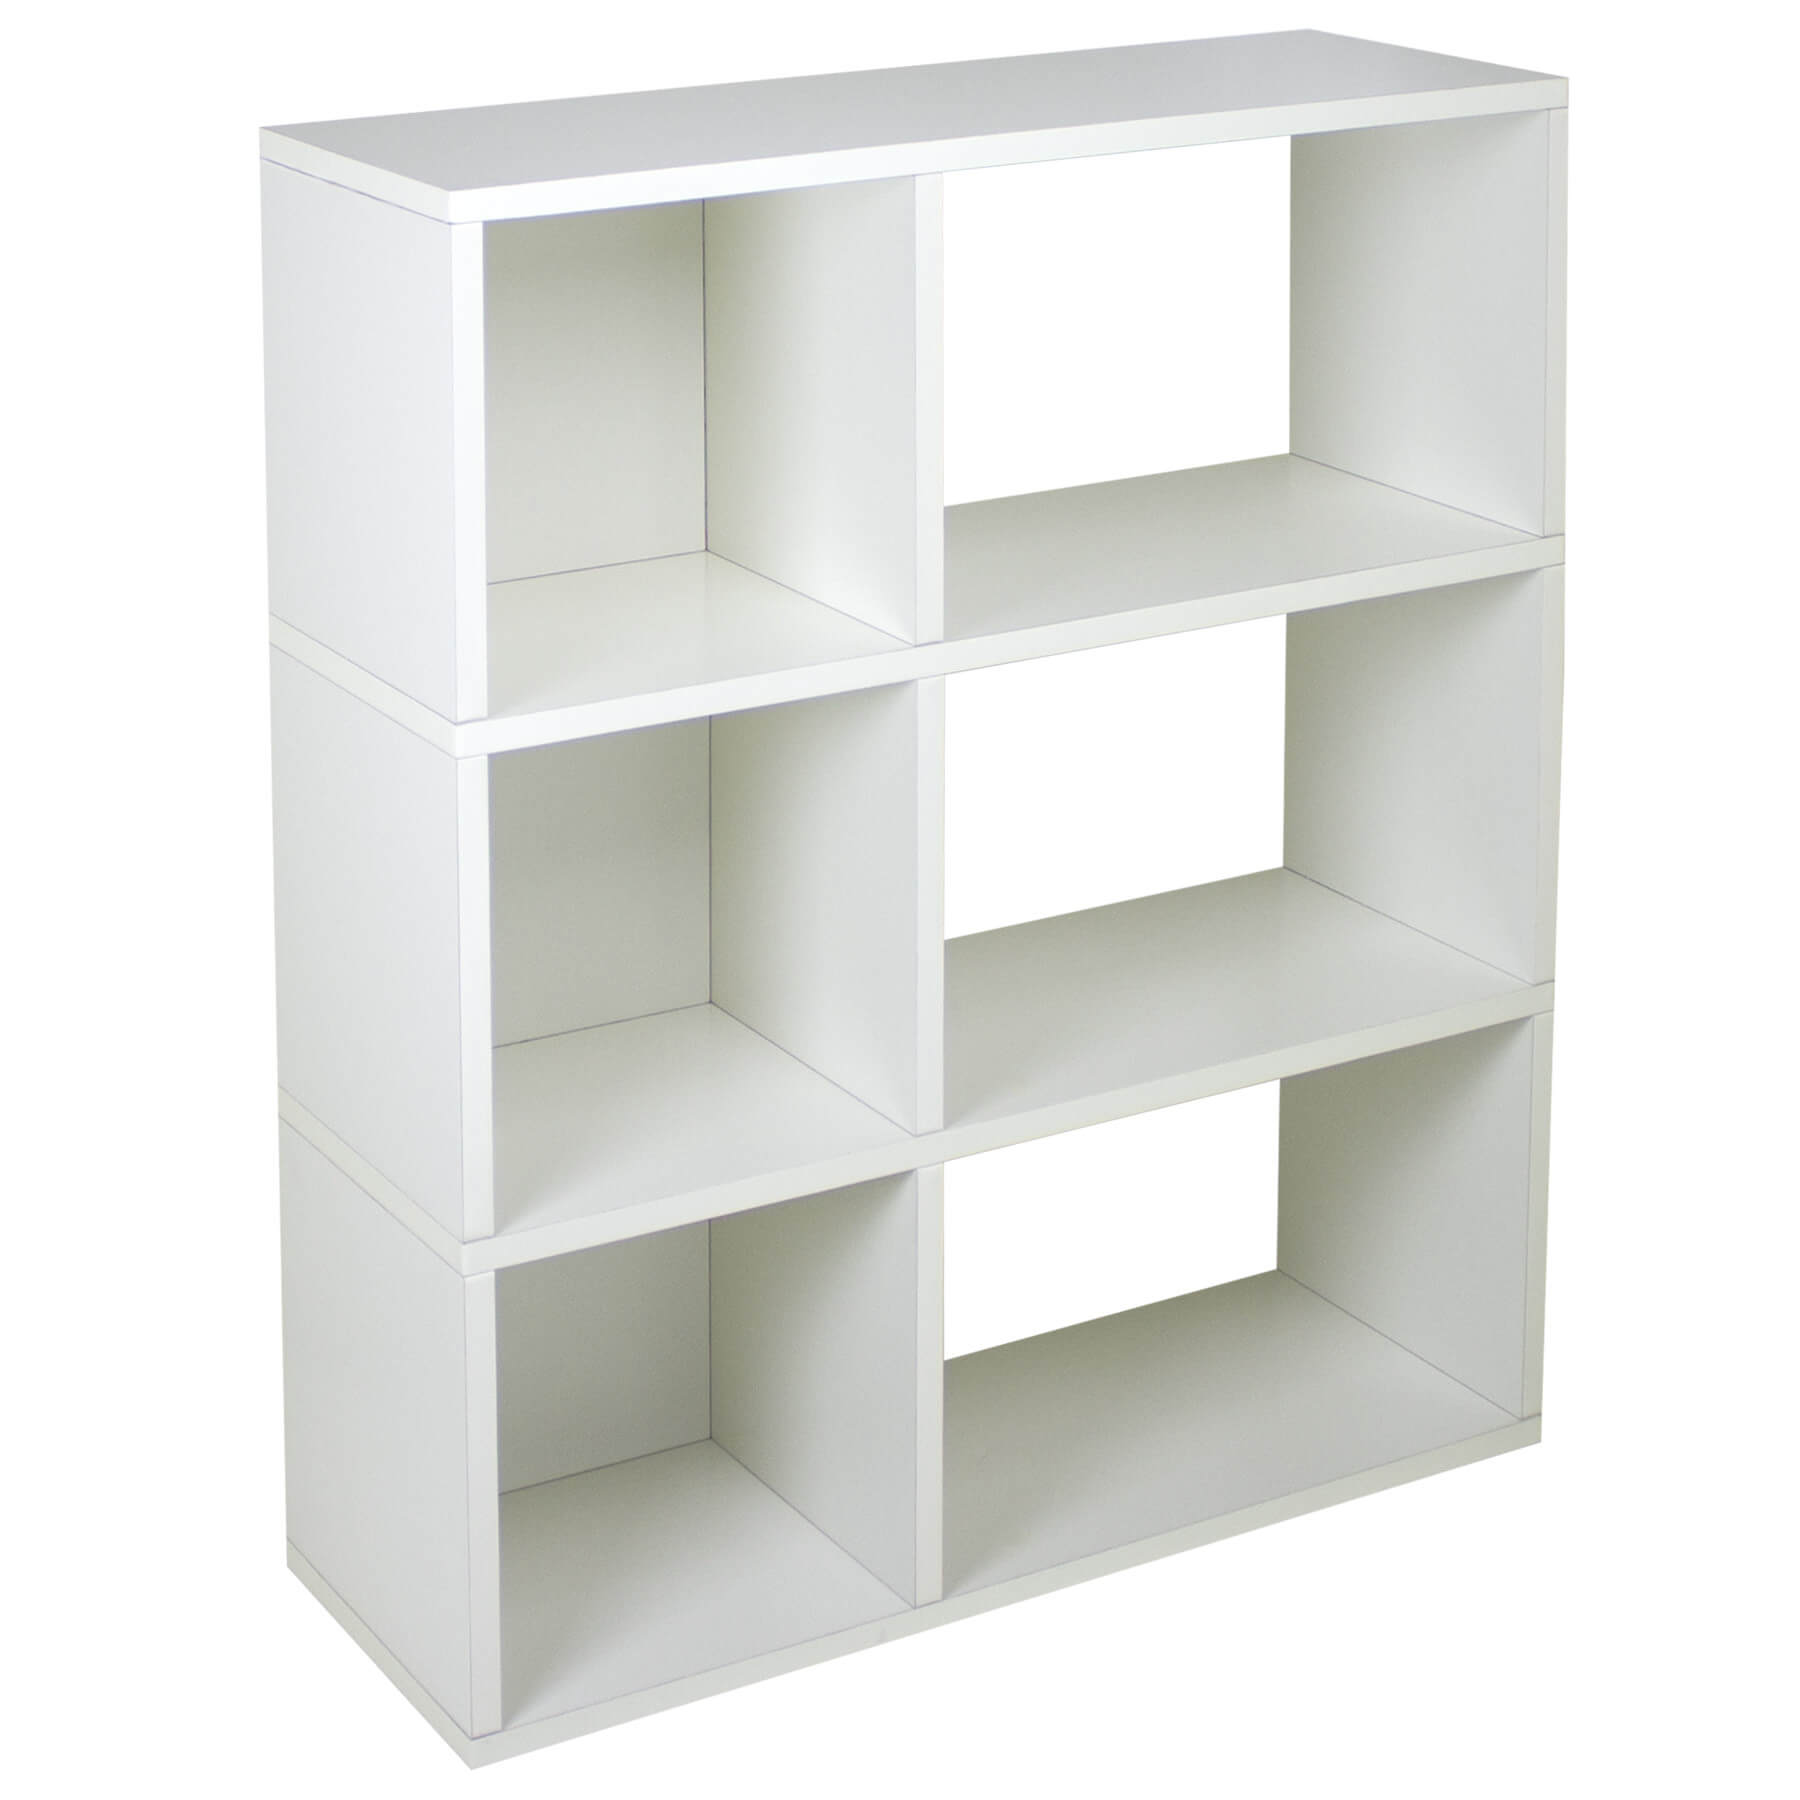 15 6-Cube Bookcases, Shelves And Storage Options